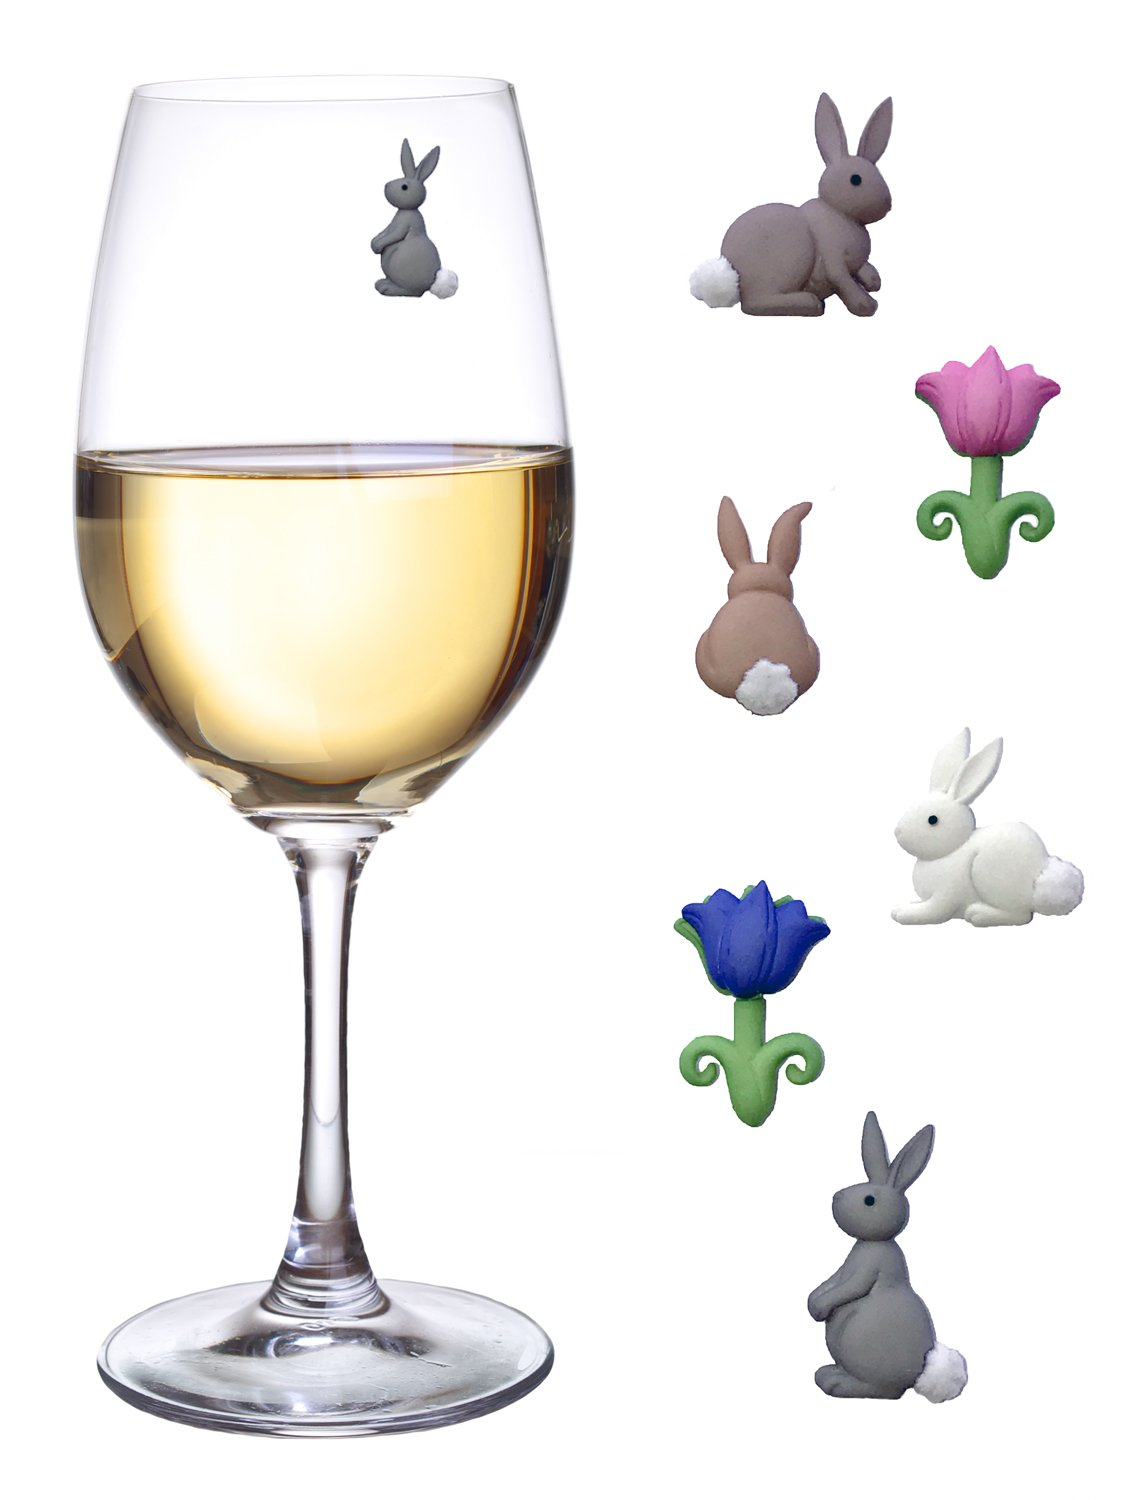 Magnetic Wine Glass Charms - Cute Bunnies and Flower Drink Markers Set of 6 by Simply Charmed